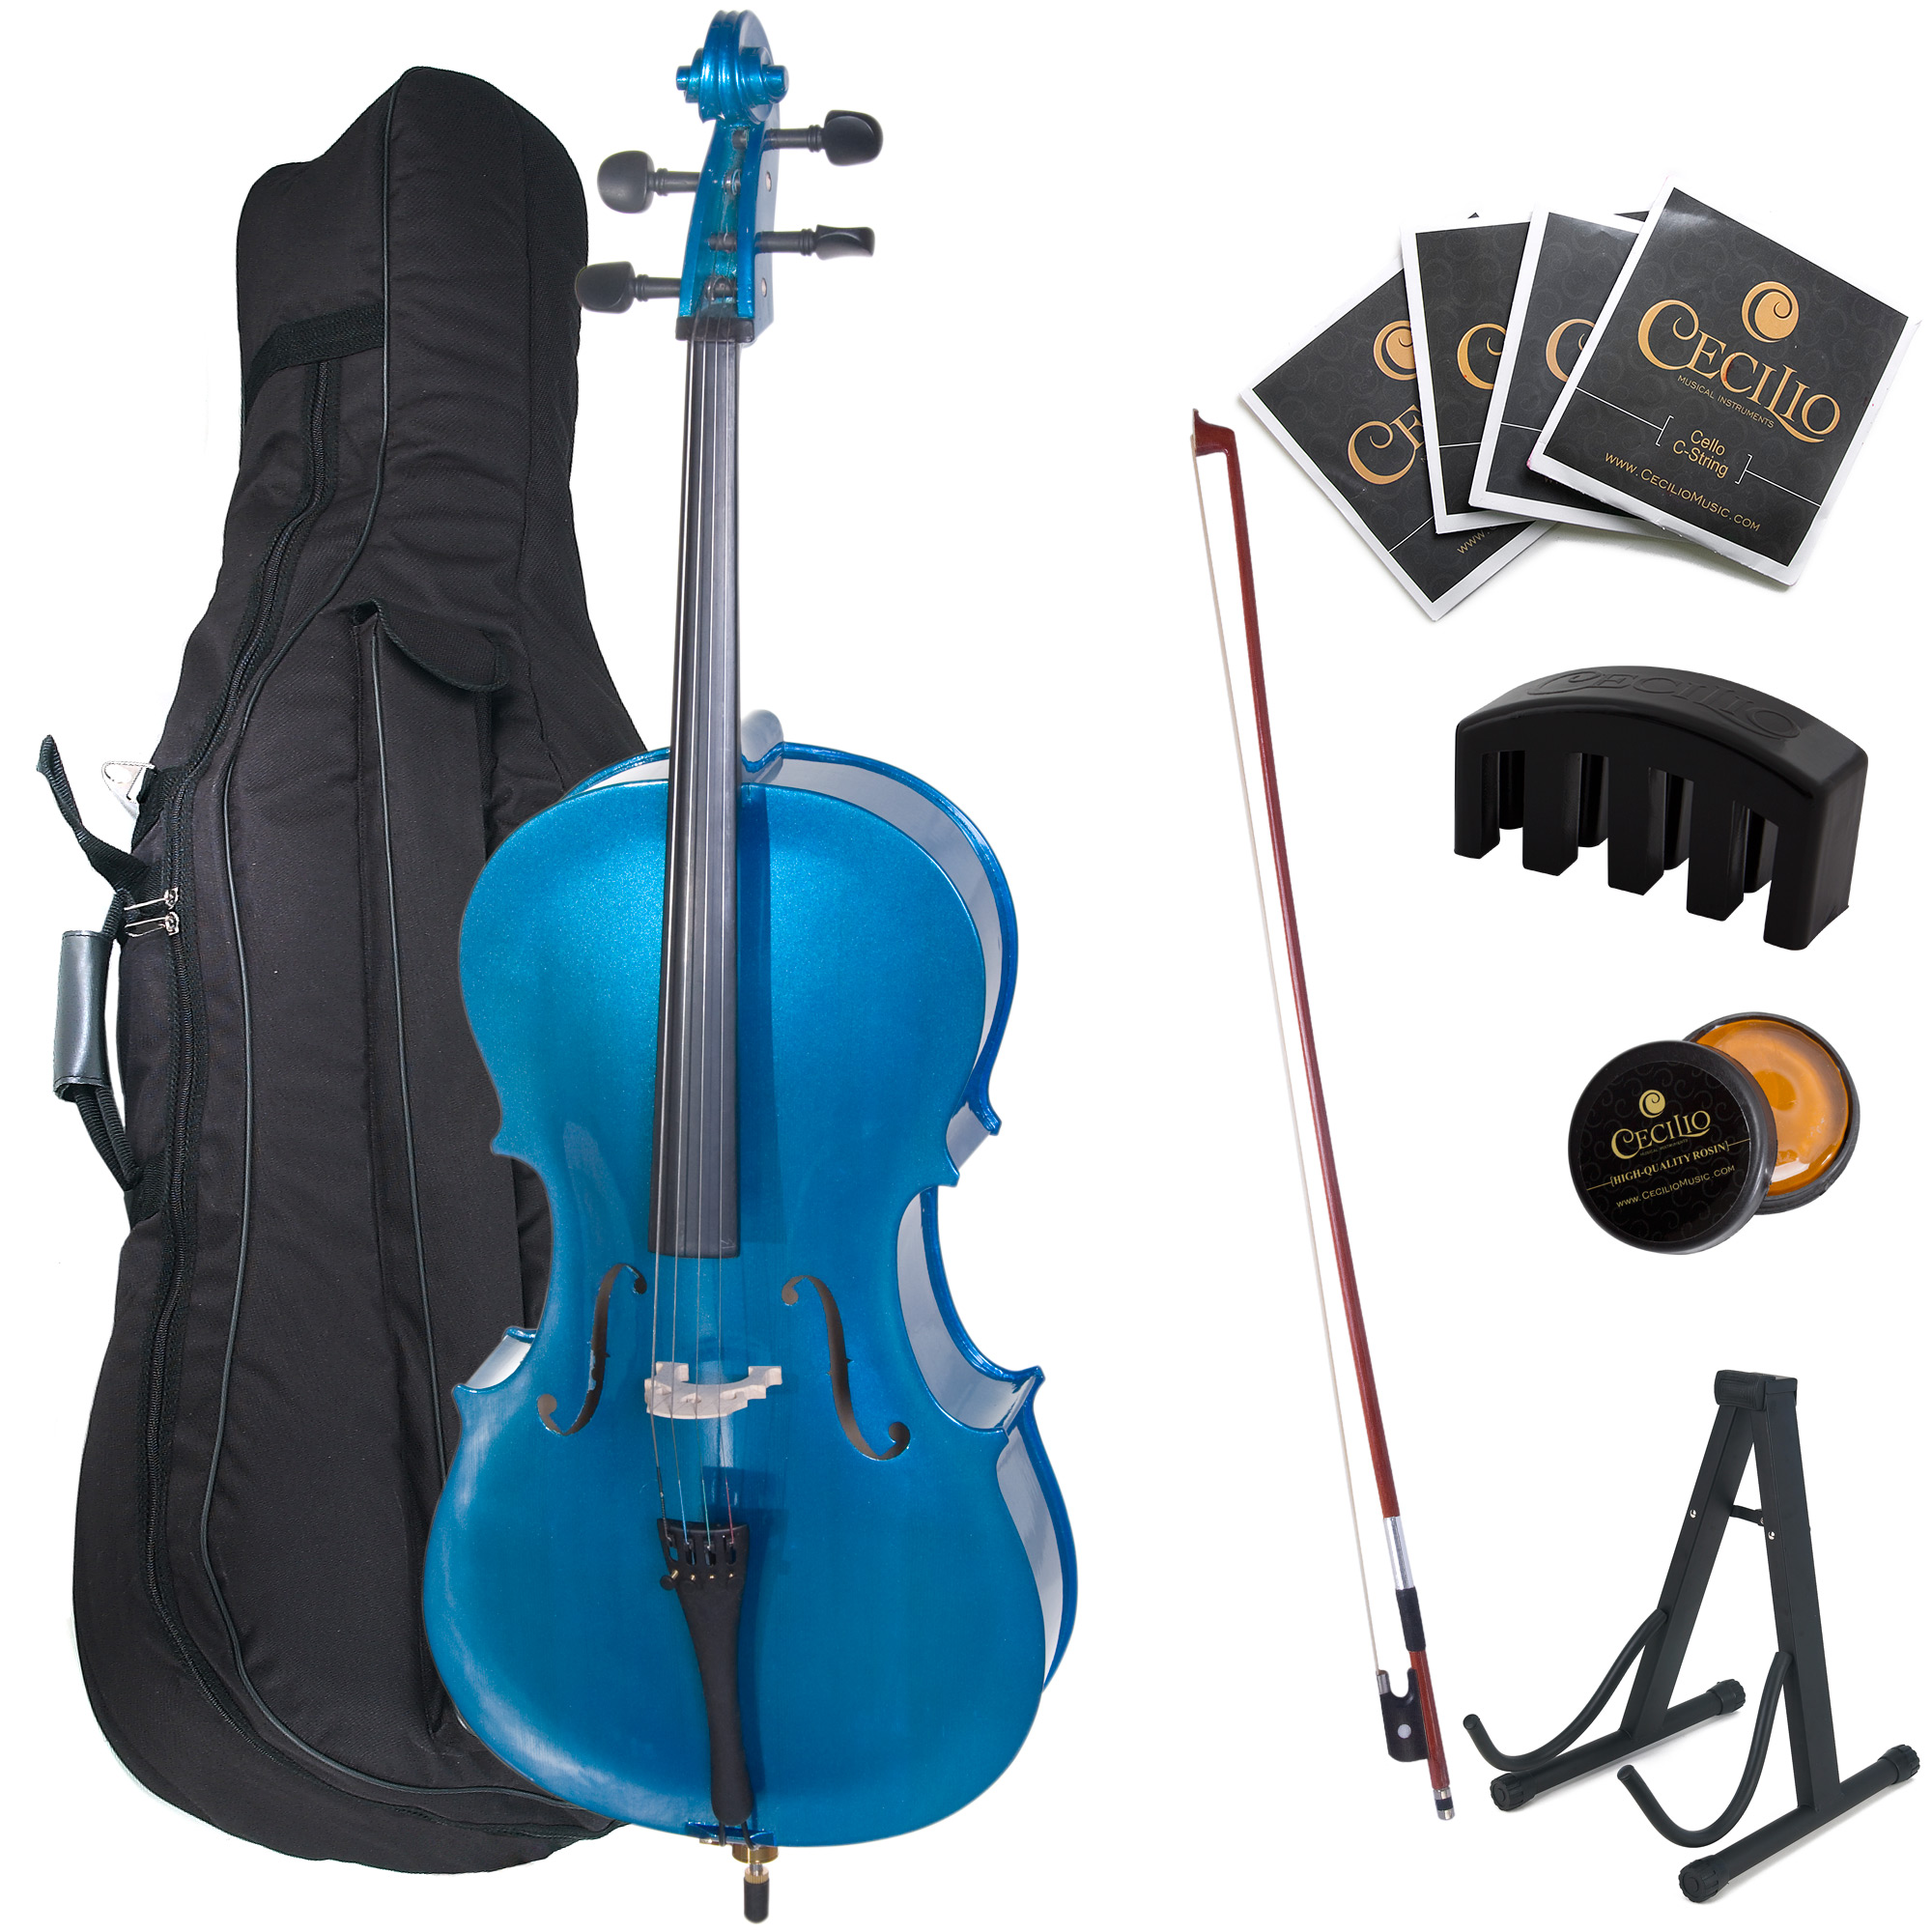 Cecilio Full Size 4/4 CCO-Blue Student Cello w/ Cello Stand, Extra Set Strings, Bow, Rosin, Bridge, Cello Mute & Soft Case